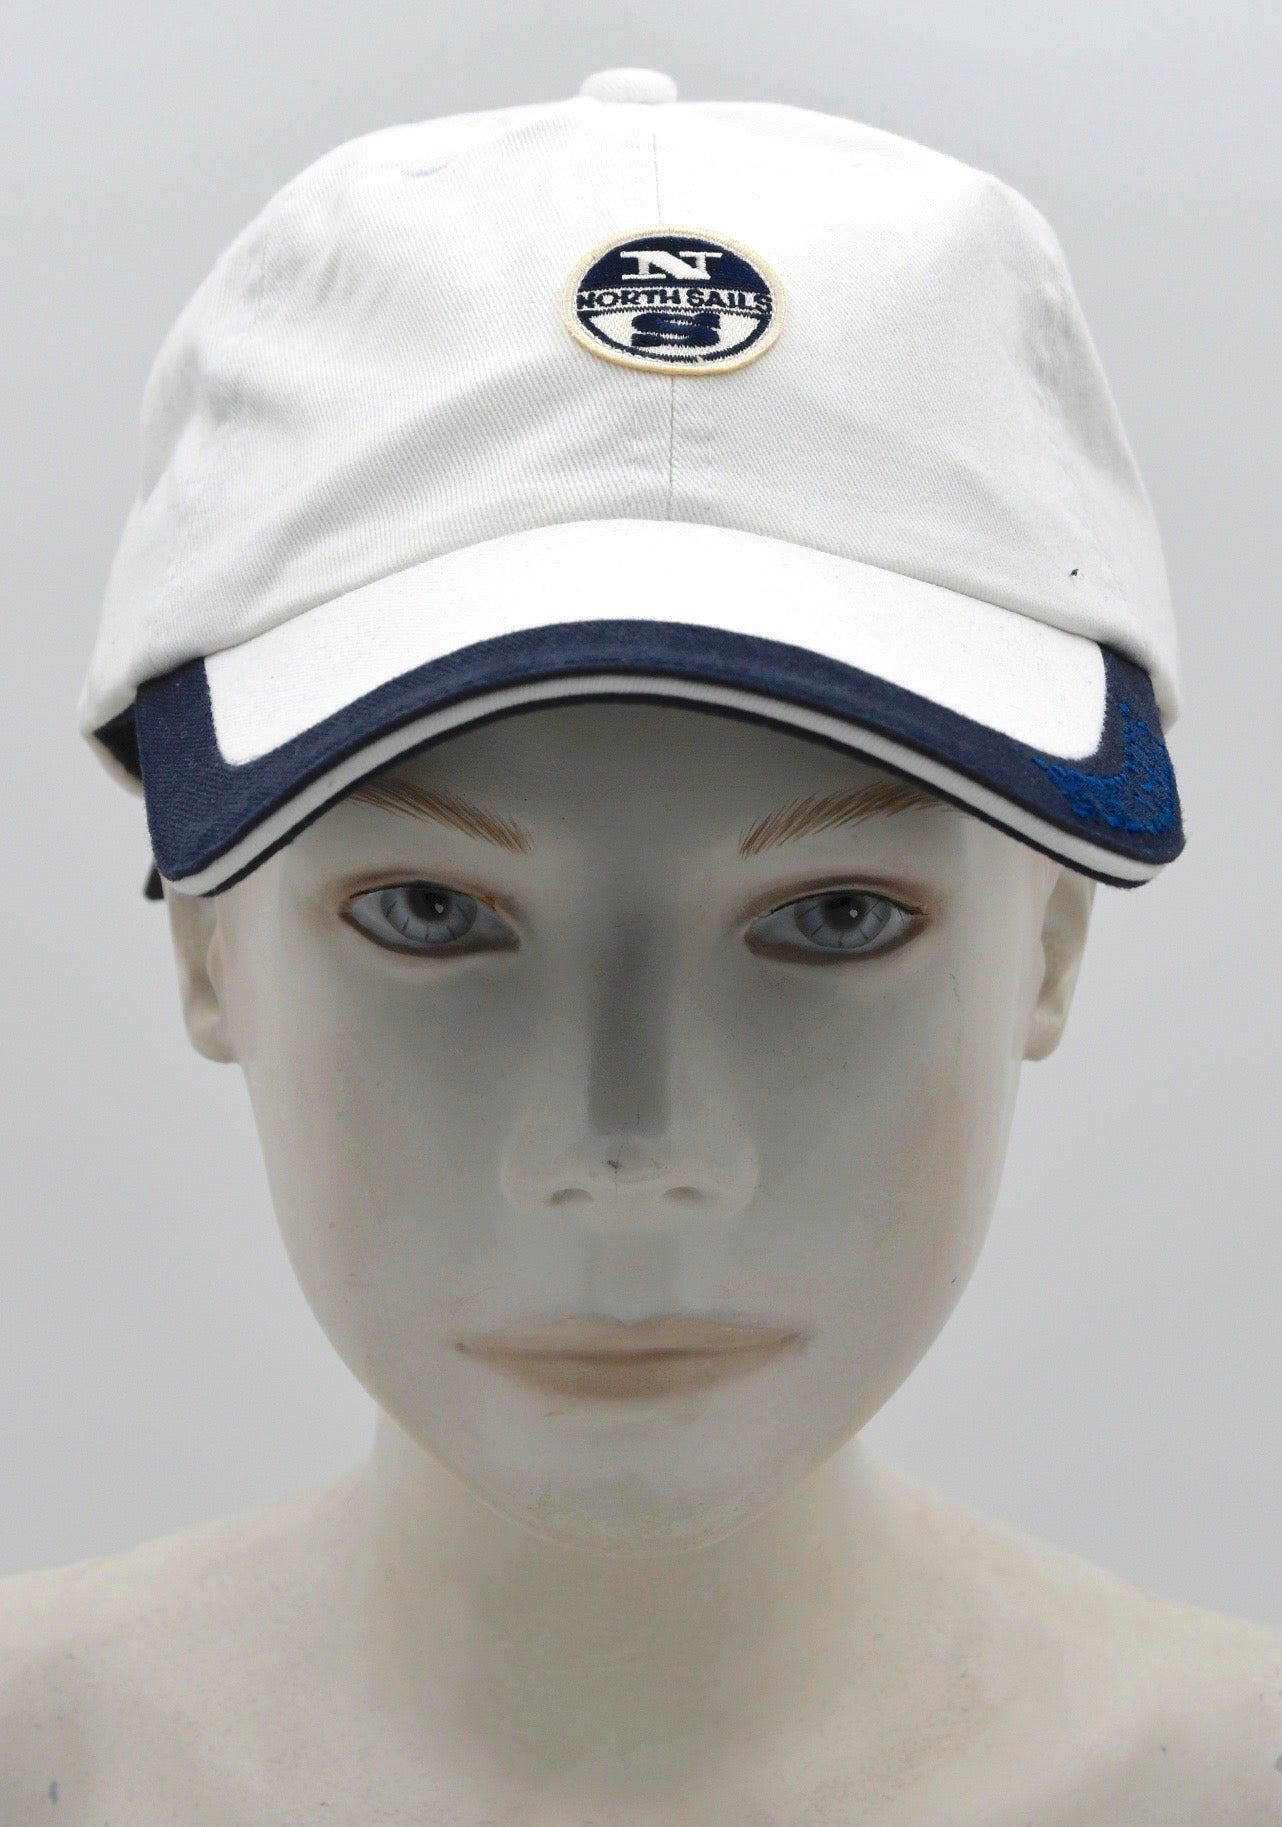 NORTH SAILS BAMBINO CAPPELLO DA BASEBALL PRIMAVERILE CASUAL ART. 72 7124 01 500